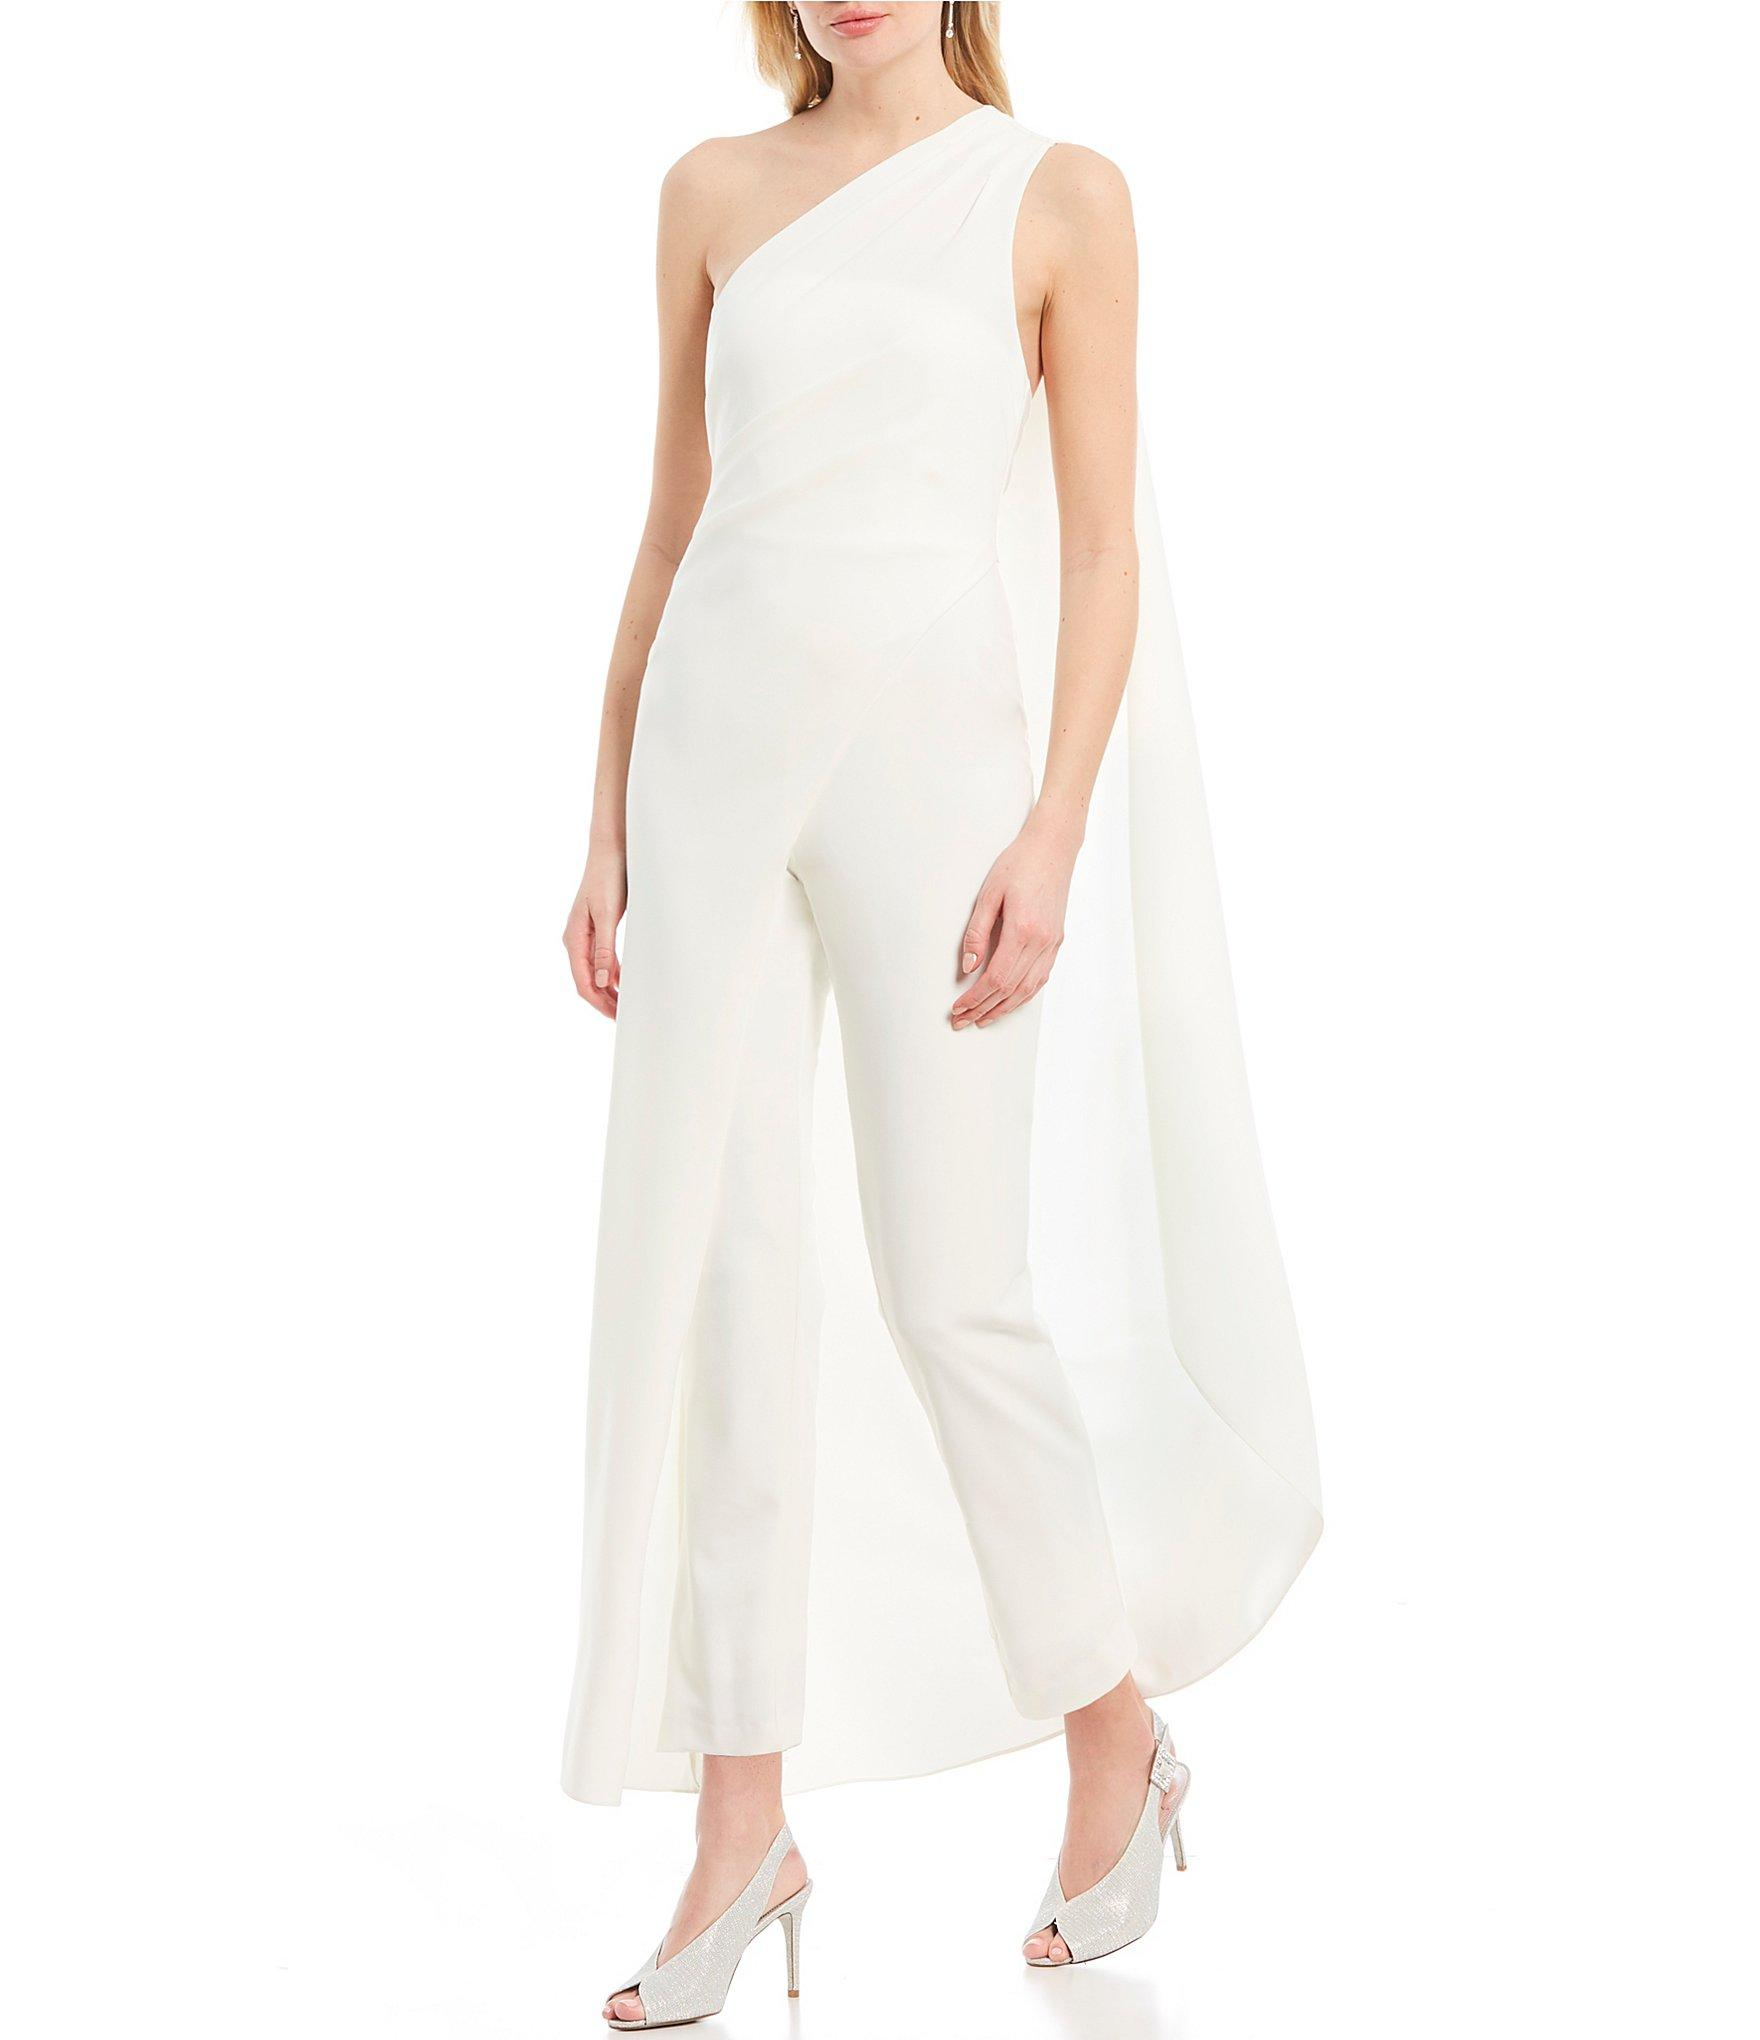 1b01c59b1cb Lyst - Adrianna Papell Drapped One Shoulder Crepe Jumpsuit in White